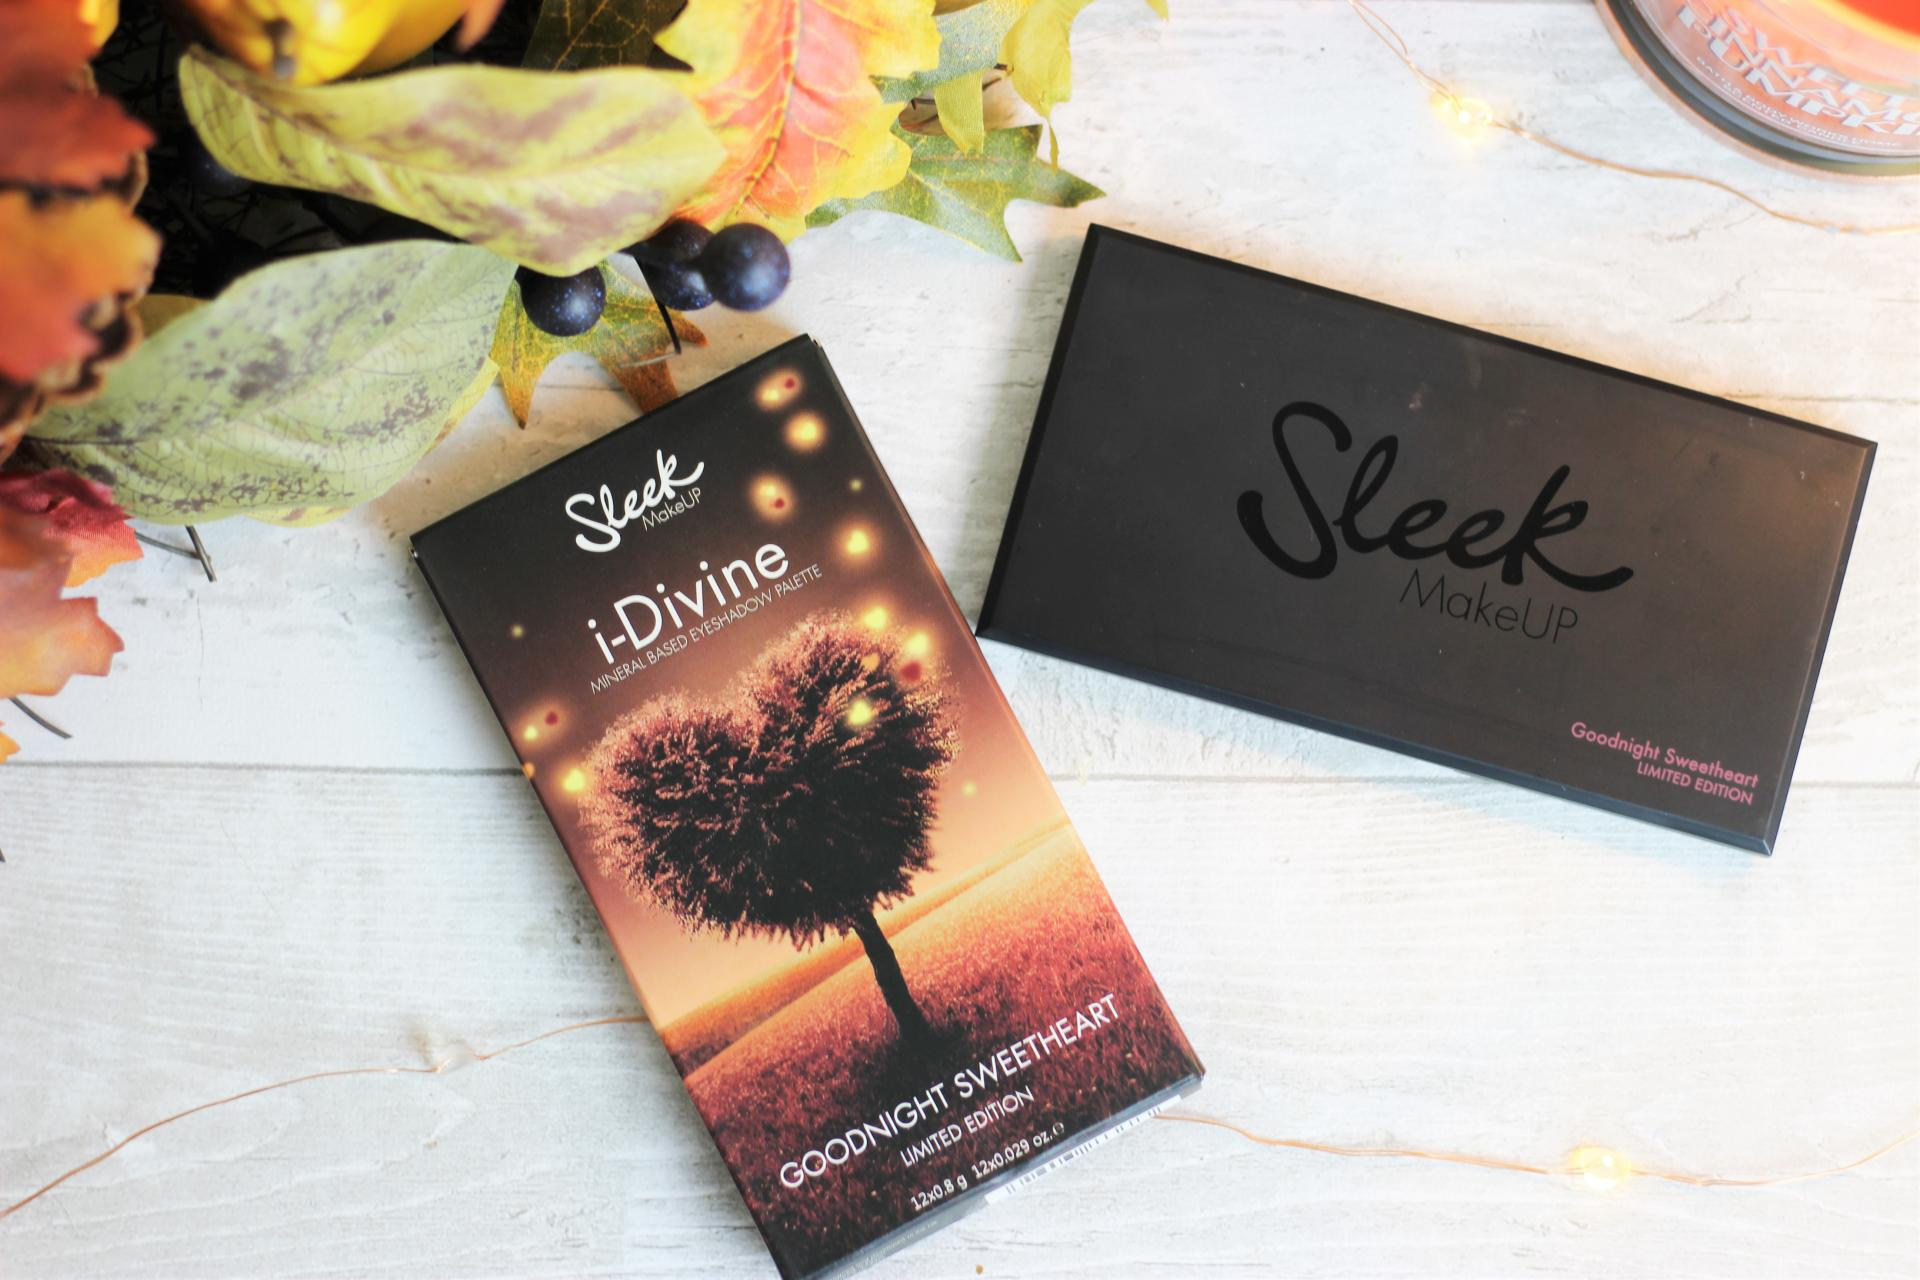 Goodnight Sweetheart Collection by Sleek Makeup